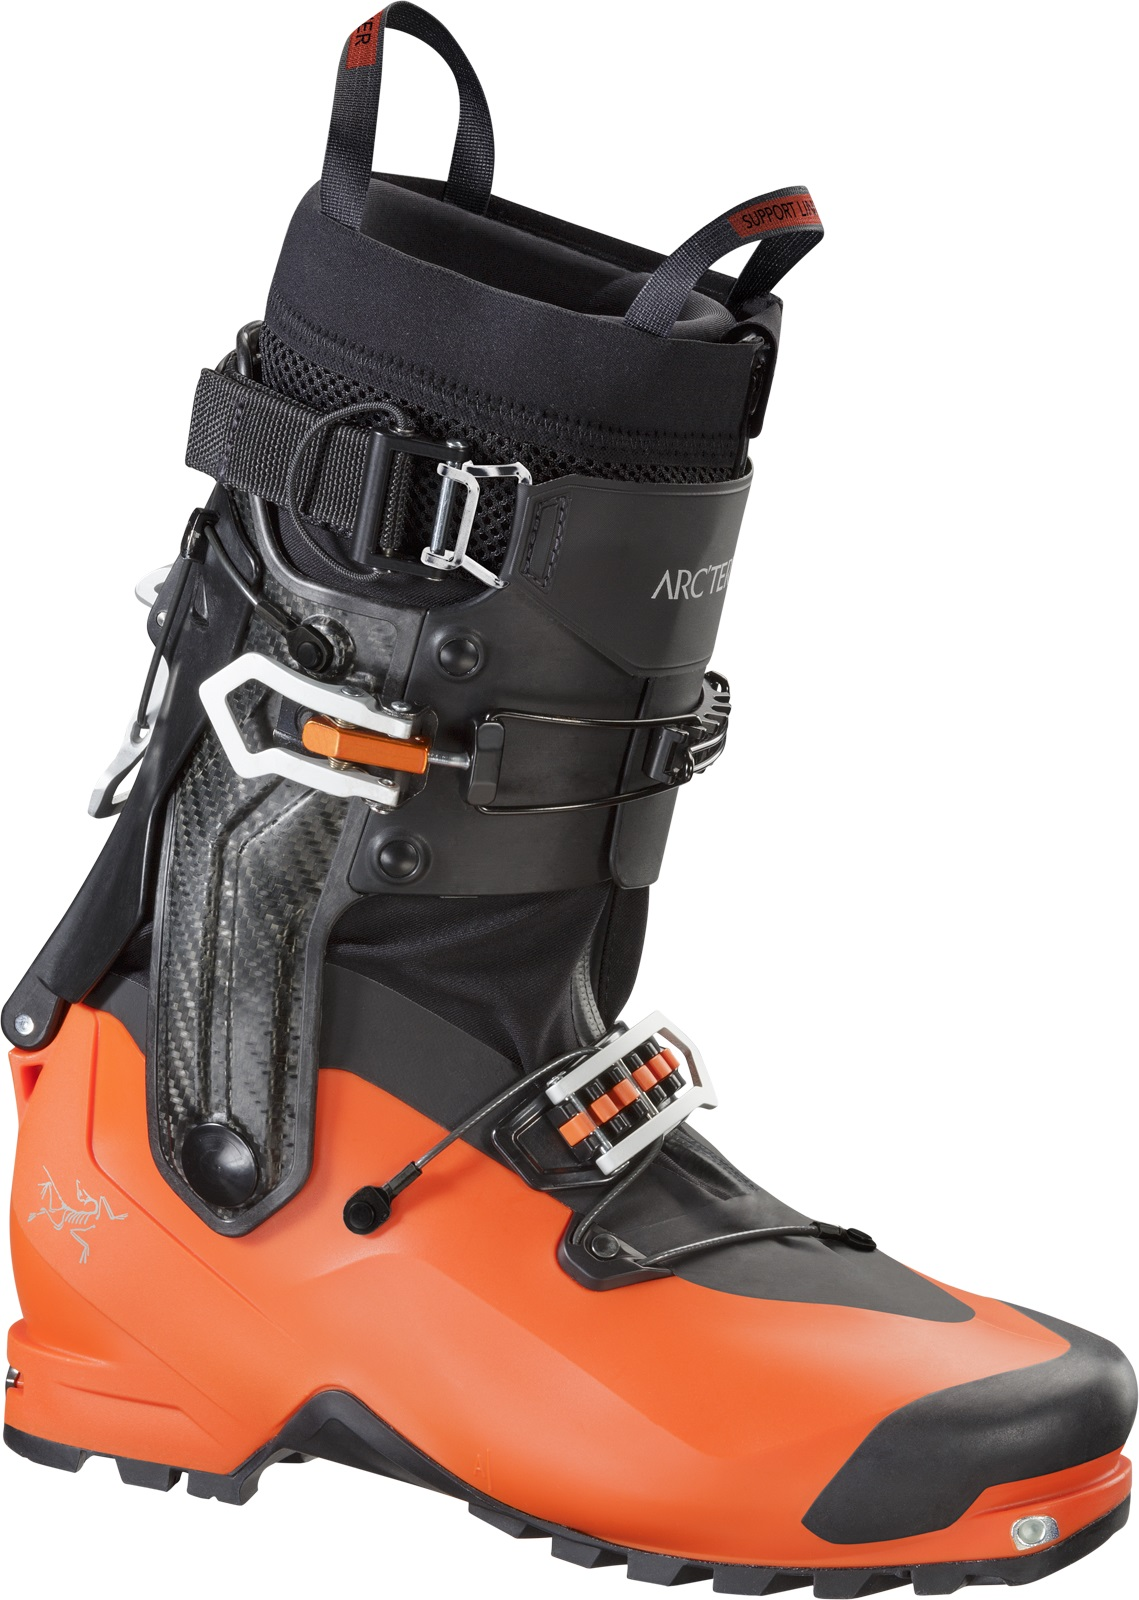 Arc Teryx Recalls Ski Mountaineering Boots Due To Fall